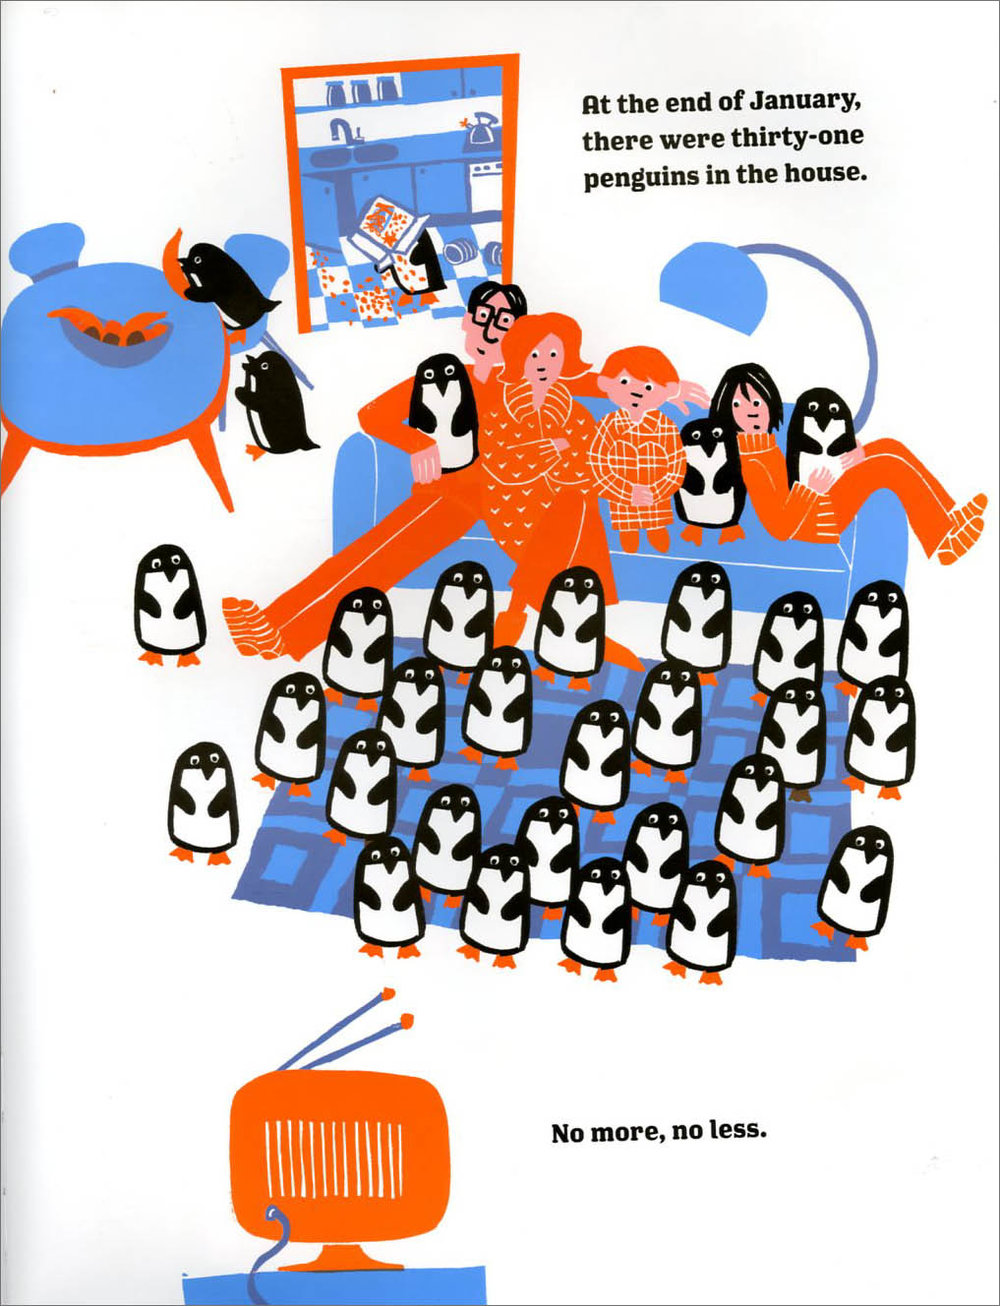 Thankfully, the penguin guests in 365 Penguins can entertain themselves--because their host family is waaaayyy too busy worrying about where they'll all sleep and how to feed them!